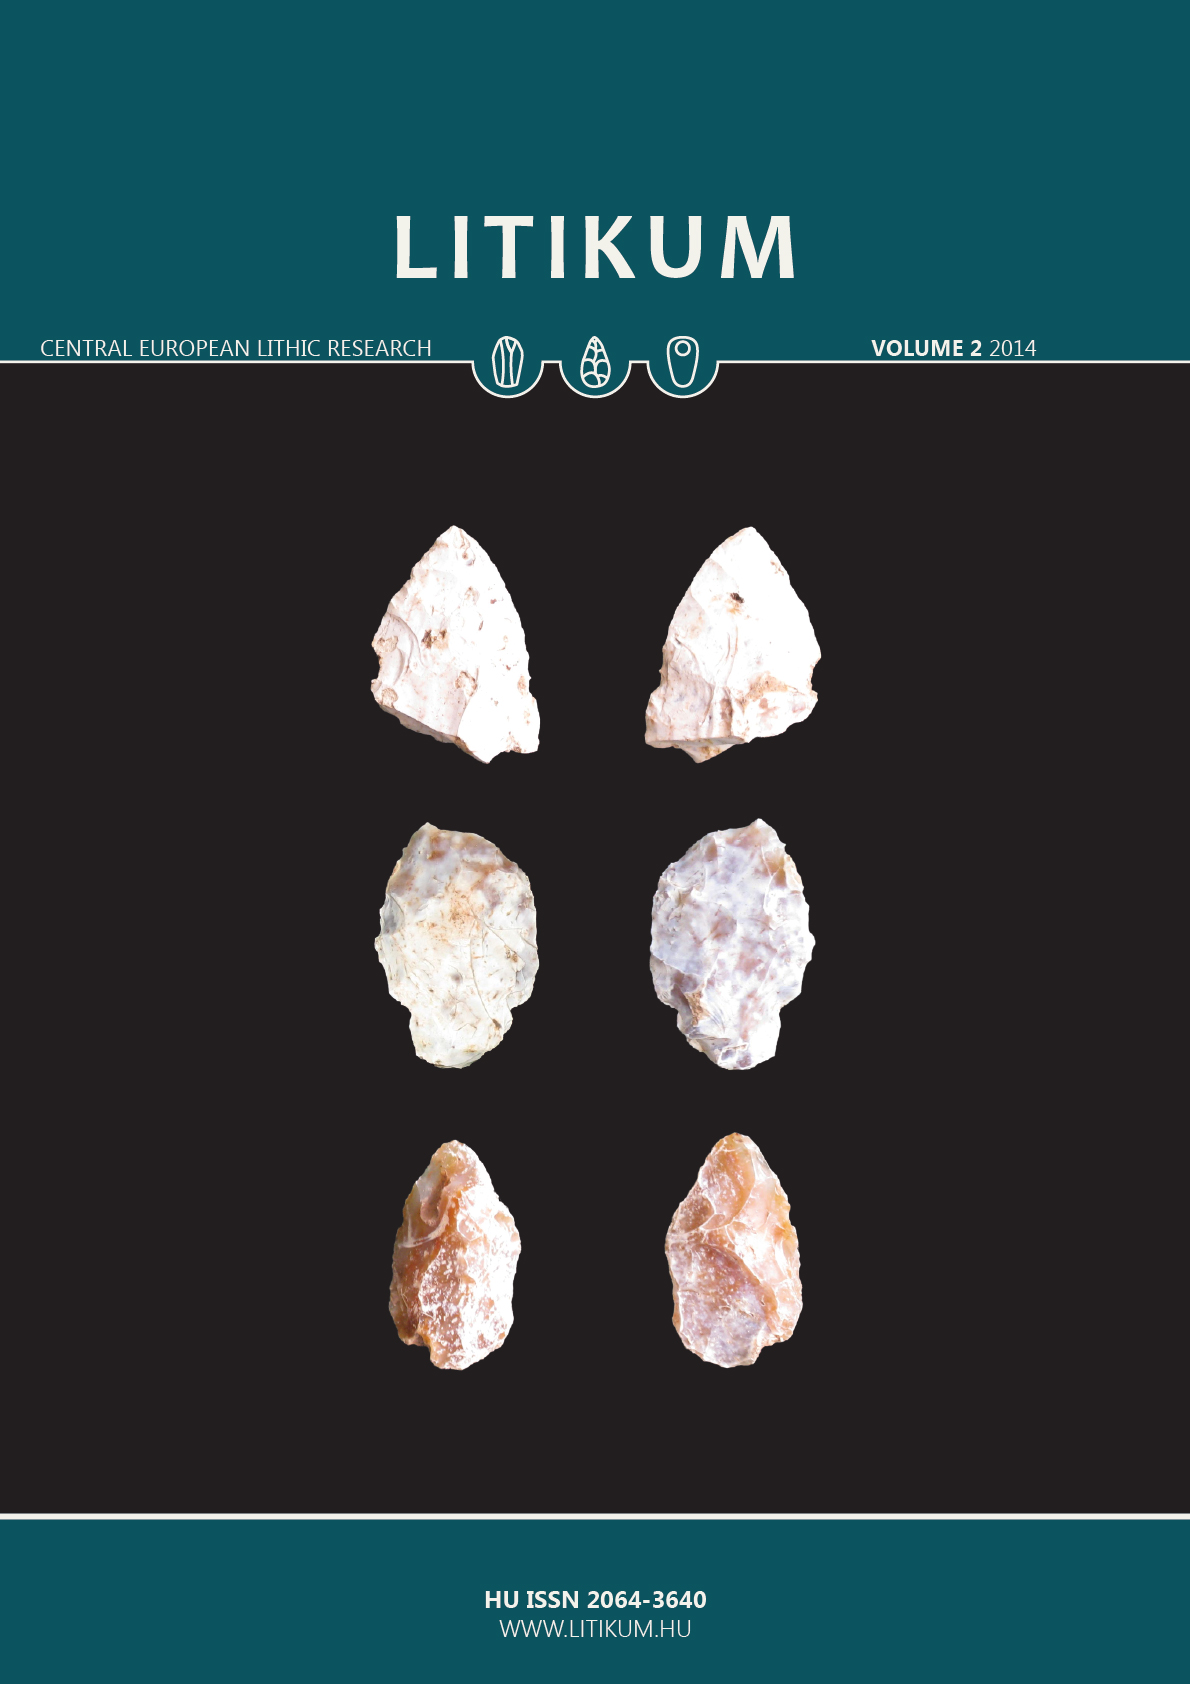 Litikum volume 2 cover image